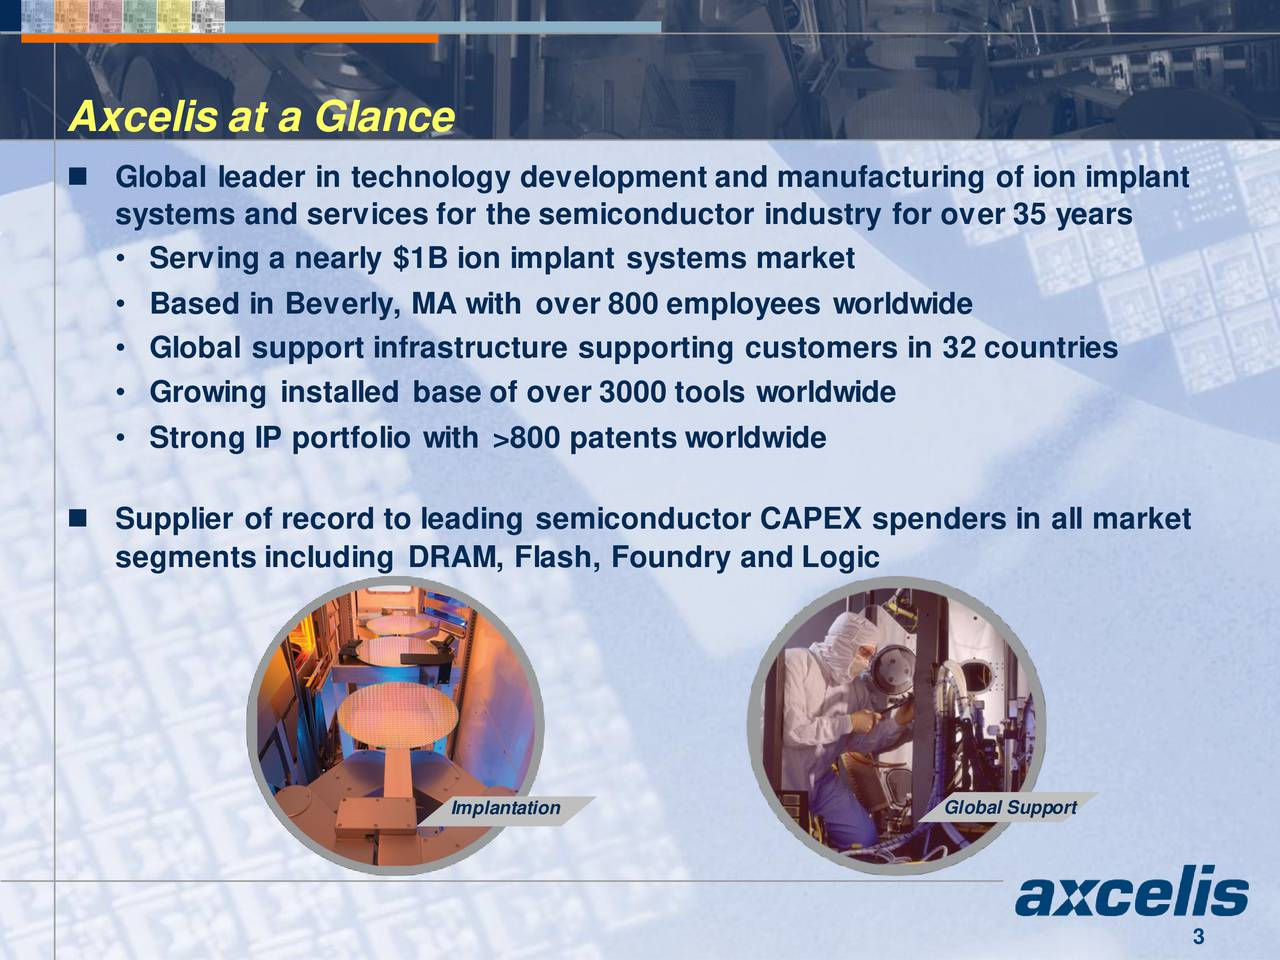 Global leader in technology development and manufacturing of ion implant systems and services for the semiconductor industry for over 35 years Serving a nearly $1B ion implant systems market Based in Beverly, MA with over 800 employees worldwide Global support infrastructure supporting customers in 32 countries Growing installed base of over 3000 tools worldwide Strong IP portfolio with >800 patents worldwide Supplier of record to leading semiconductor CAPEX spenders in all market segments including DRAM, Flash, Foundry and Logic Implantation Global Support 3